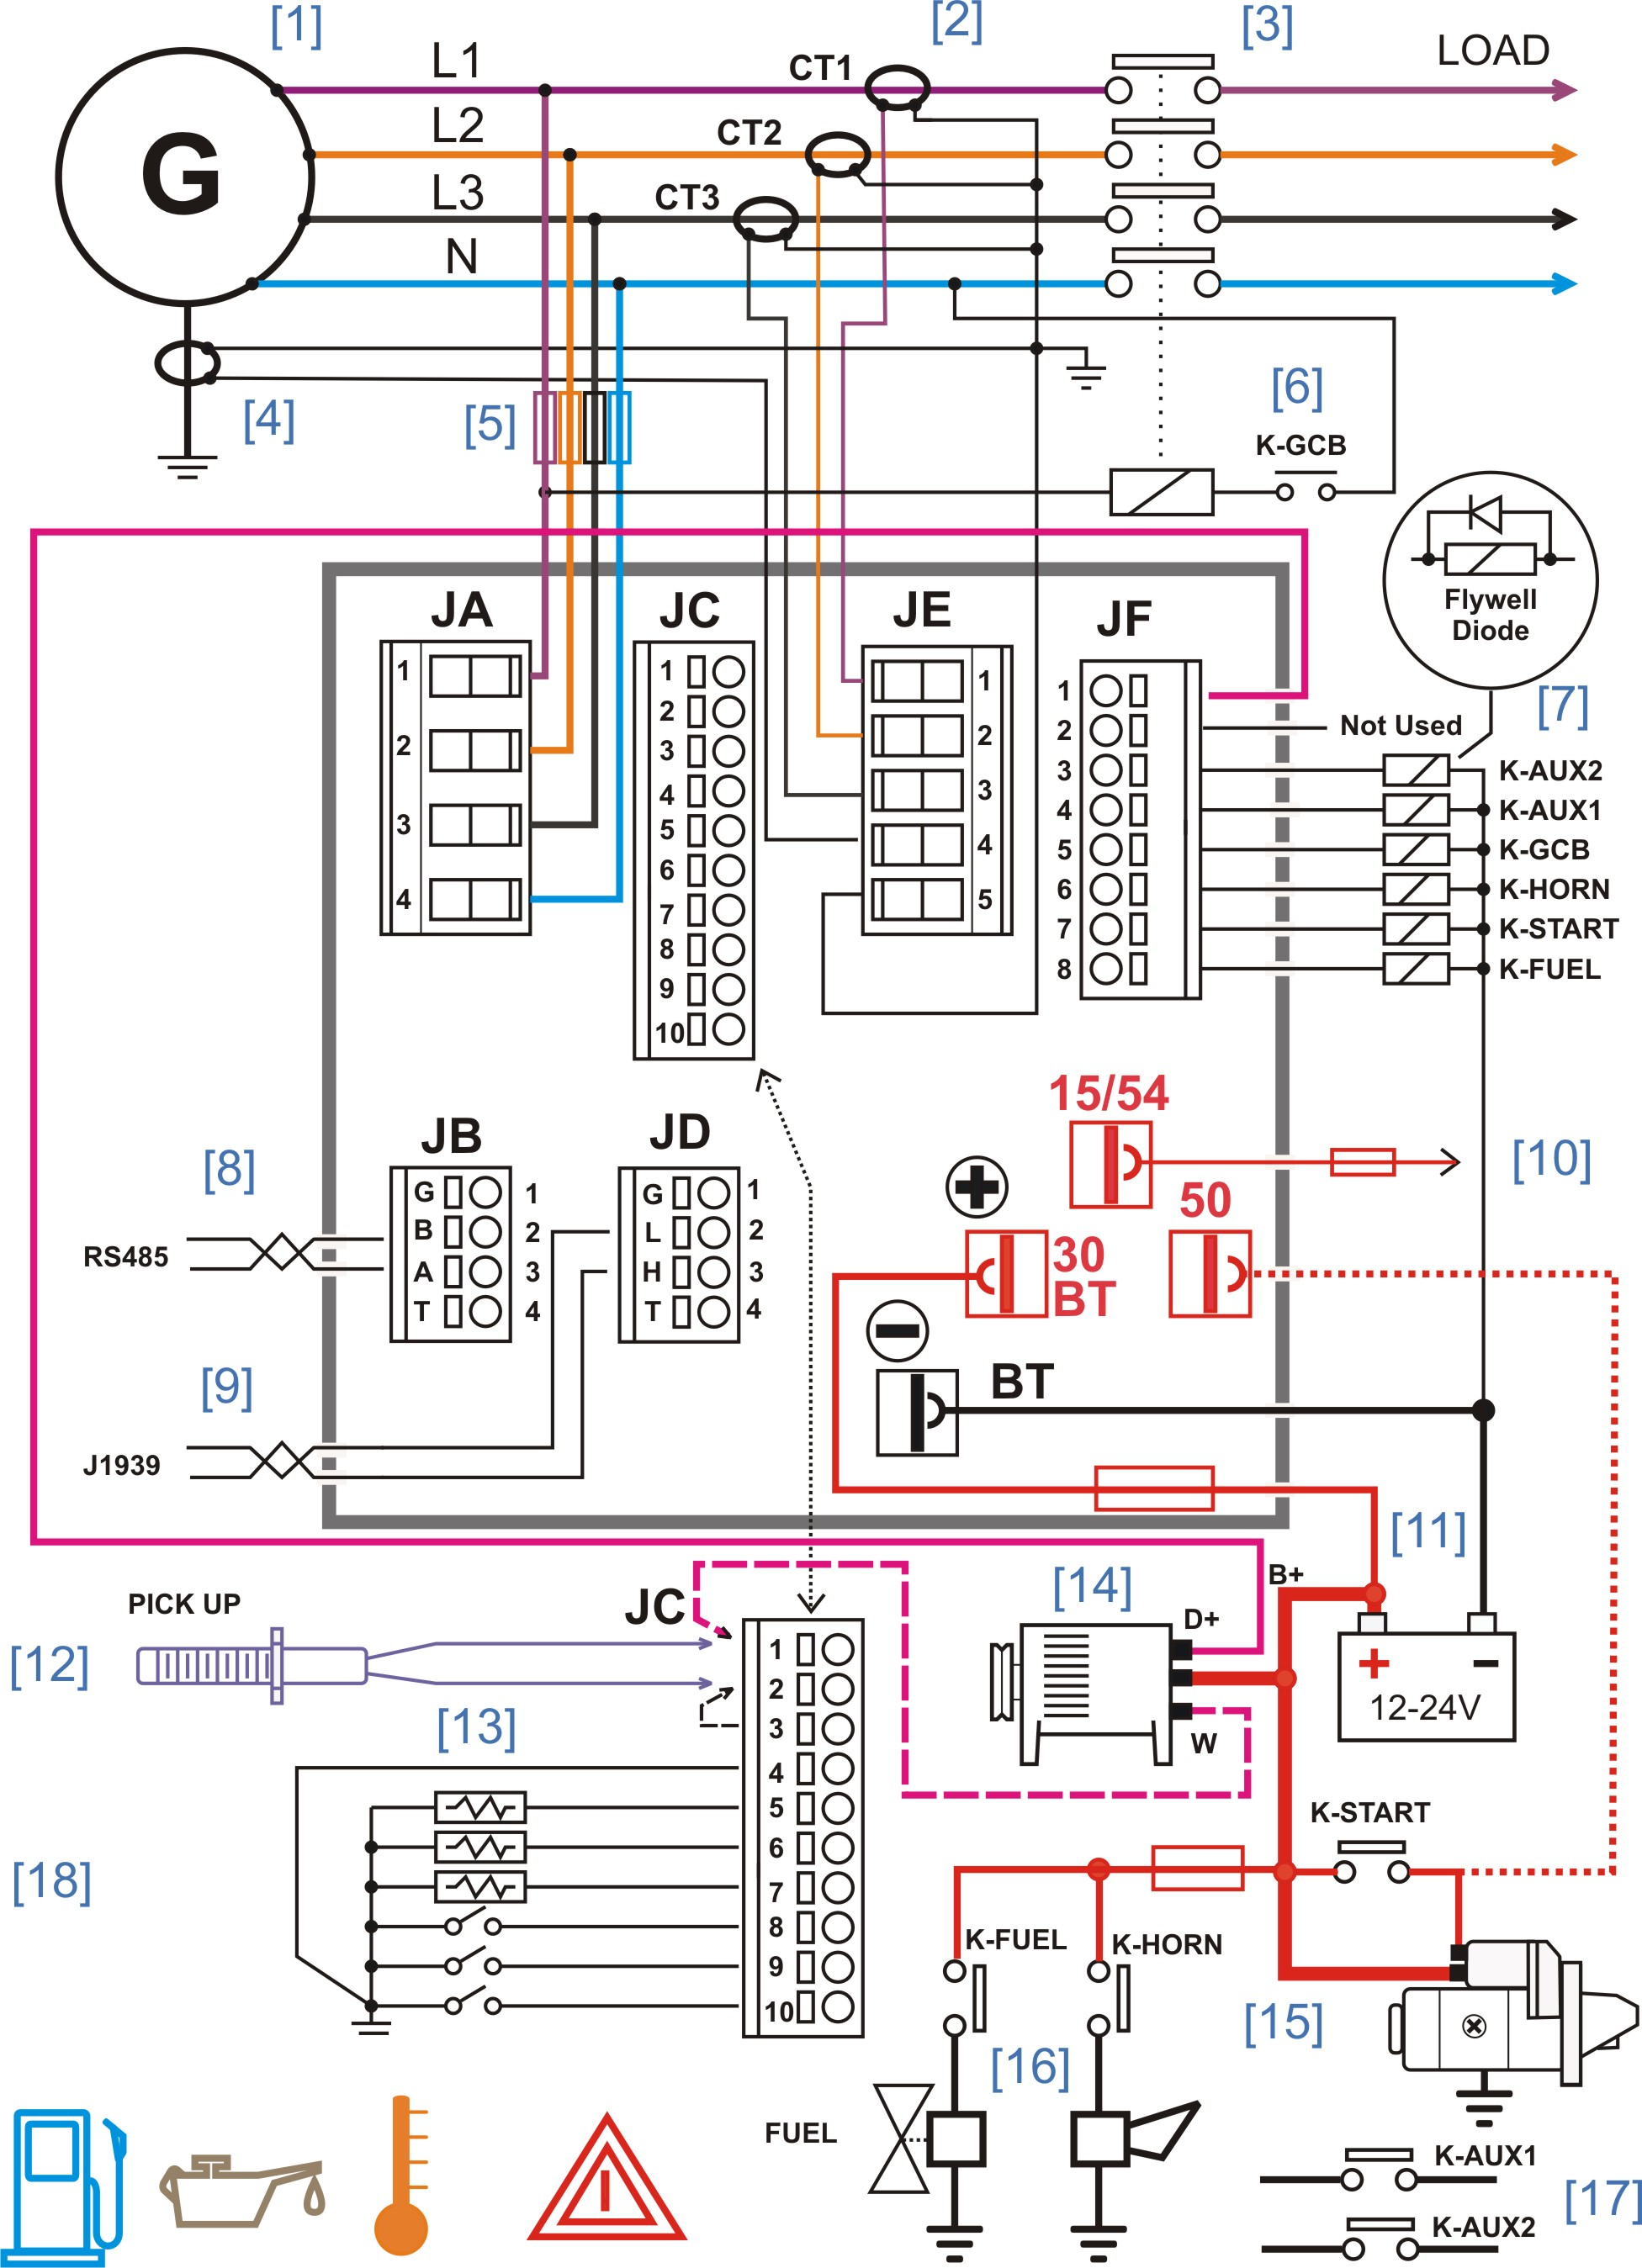 diagram motor control wiring dpdt toggle switch diesel generator panel  genset